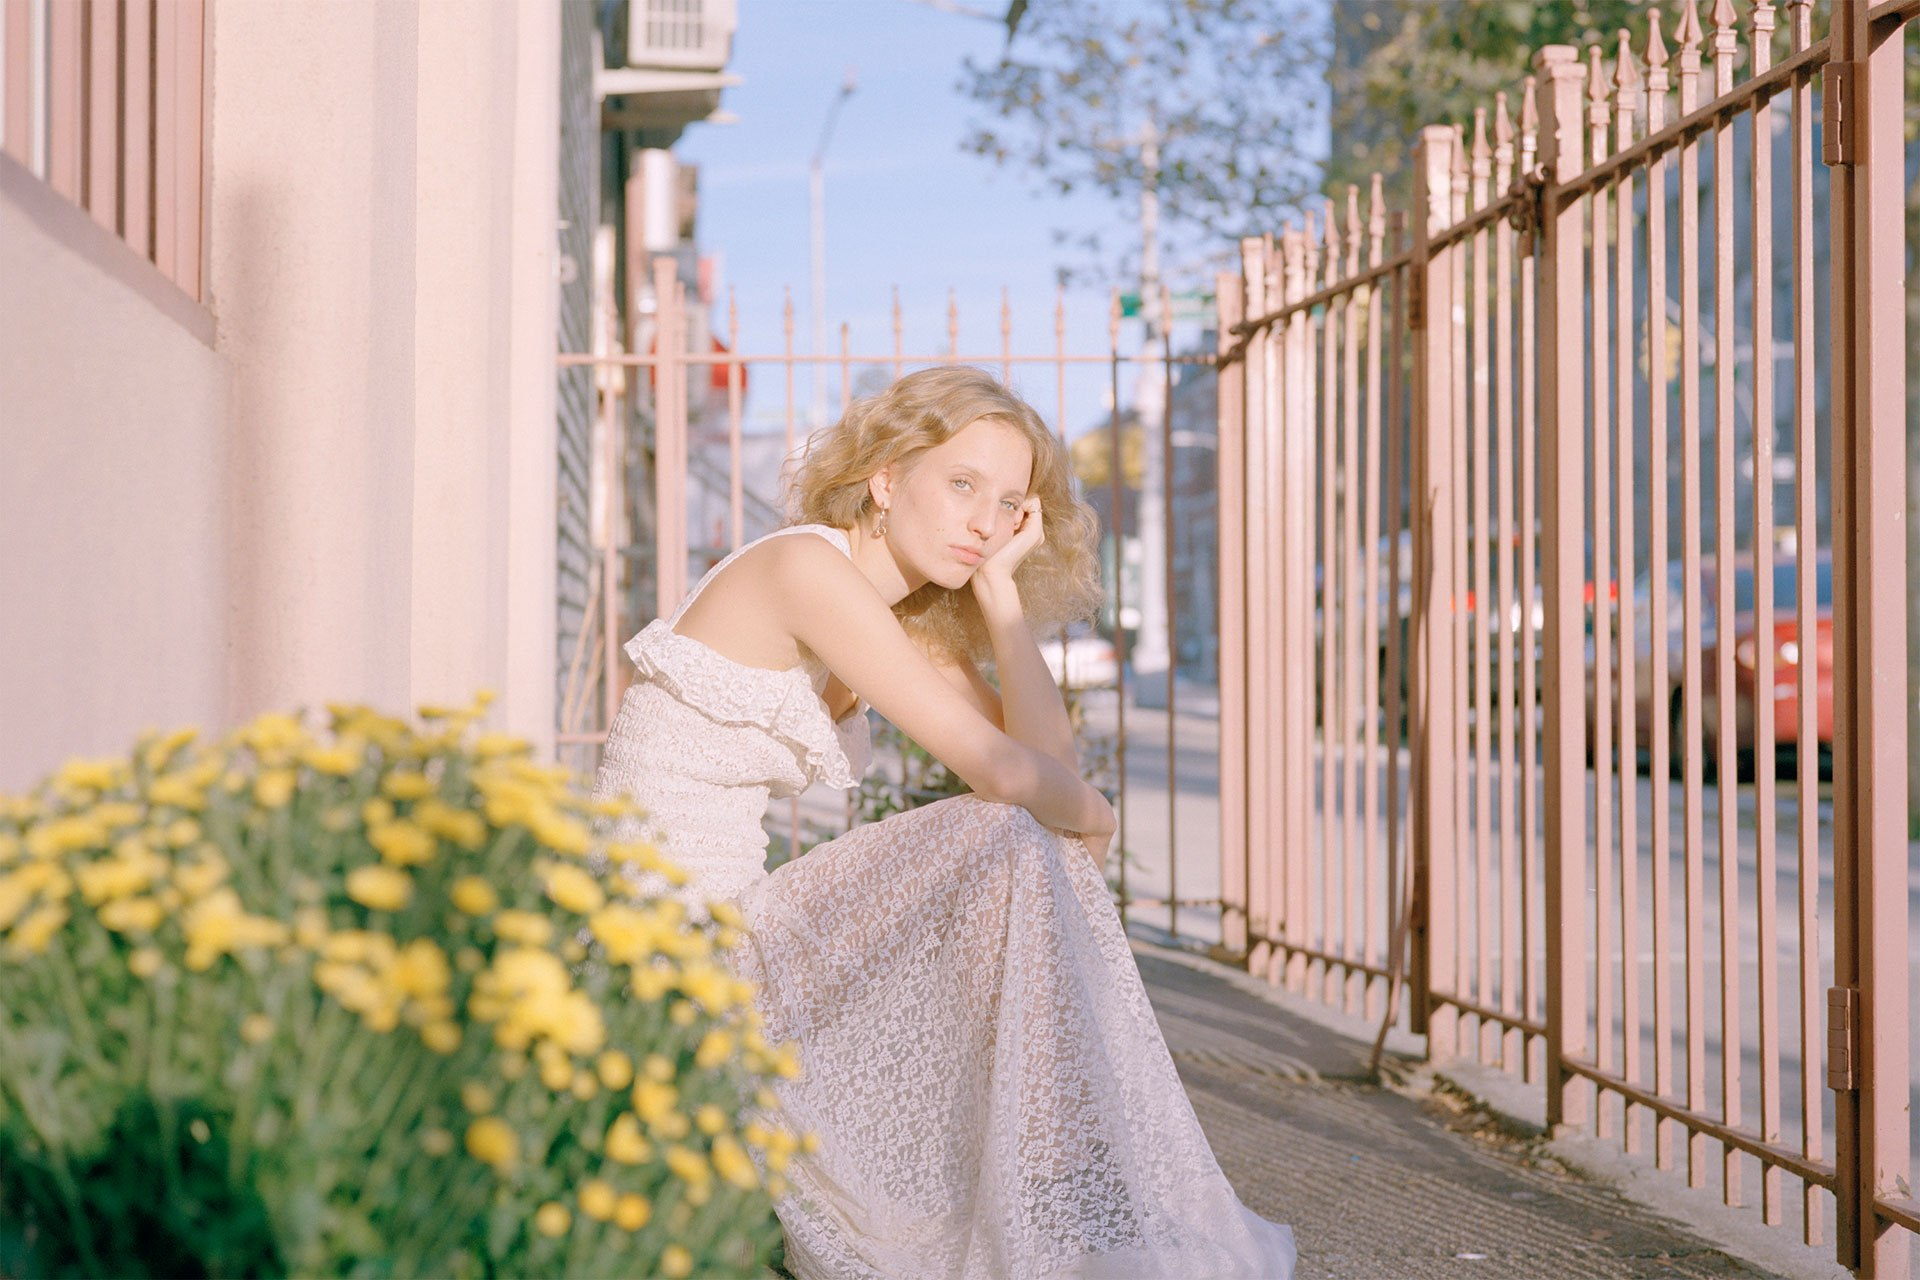 Inside the eerie, dreamy world of photographer Petra Collins